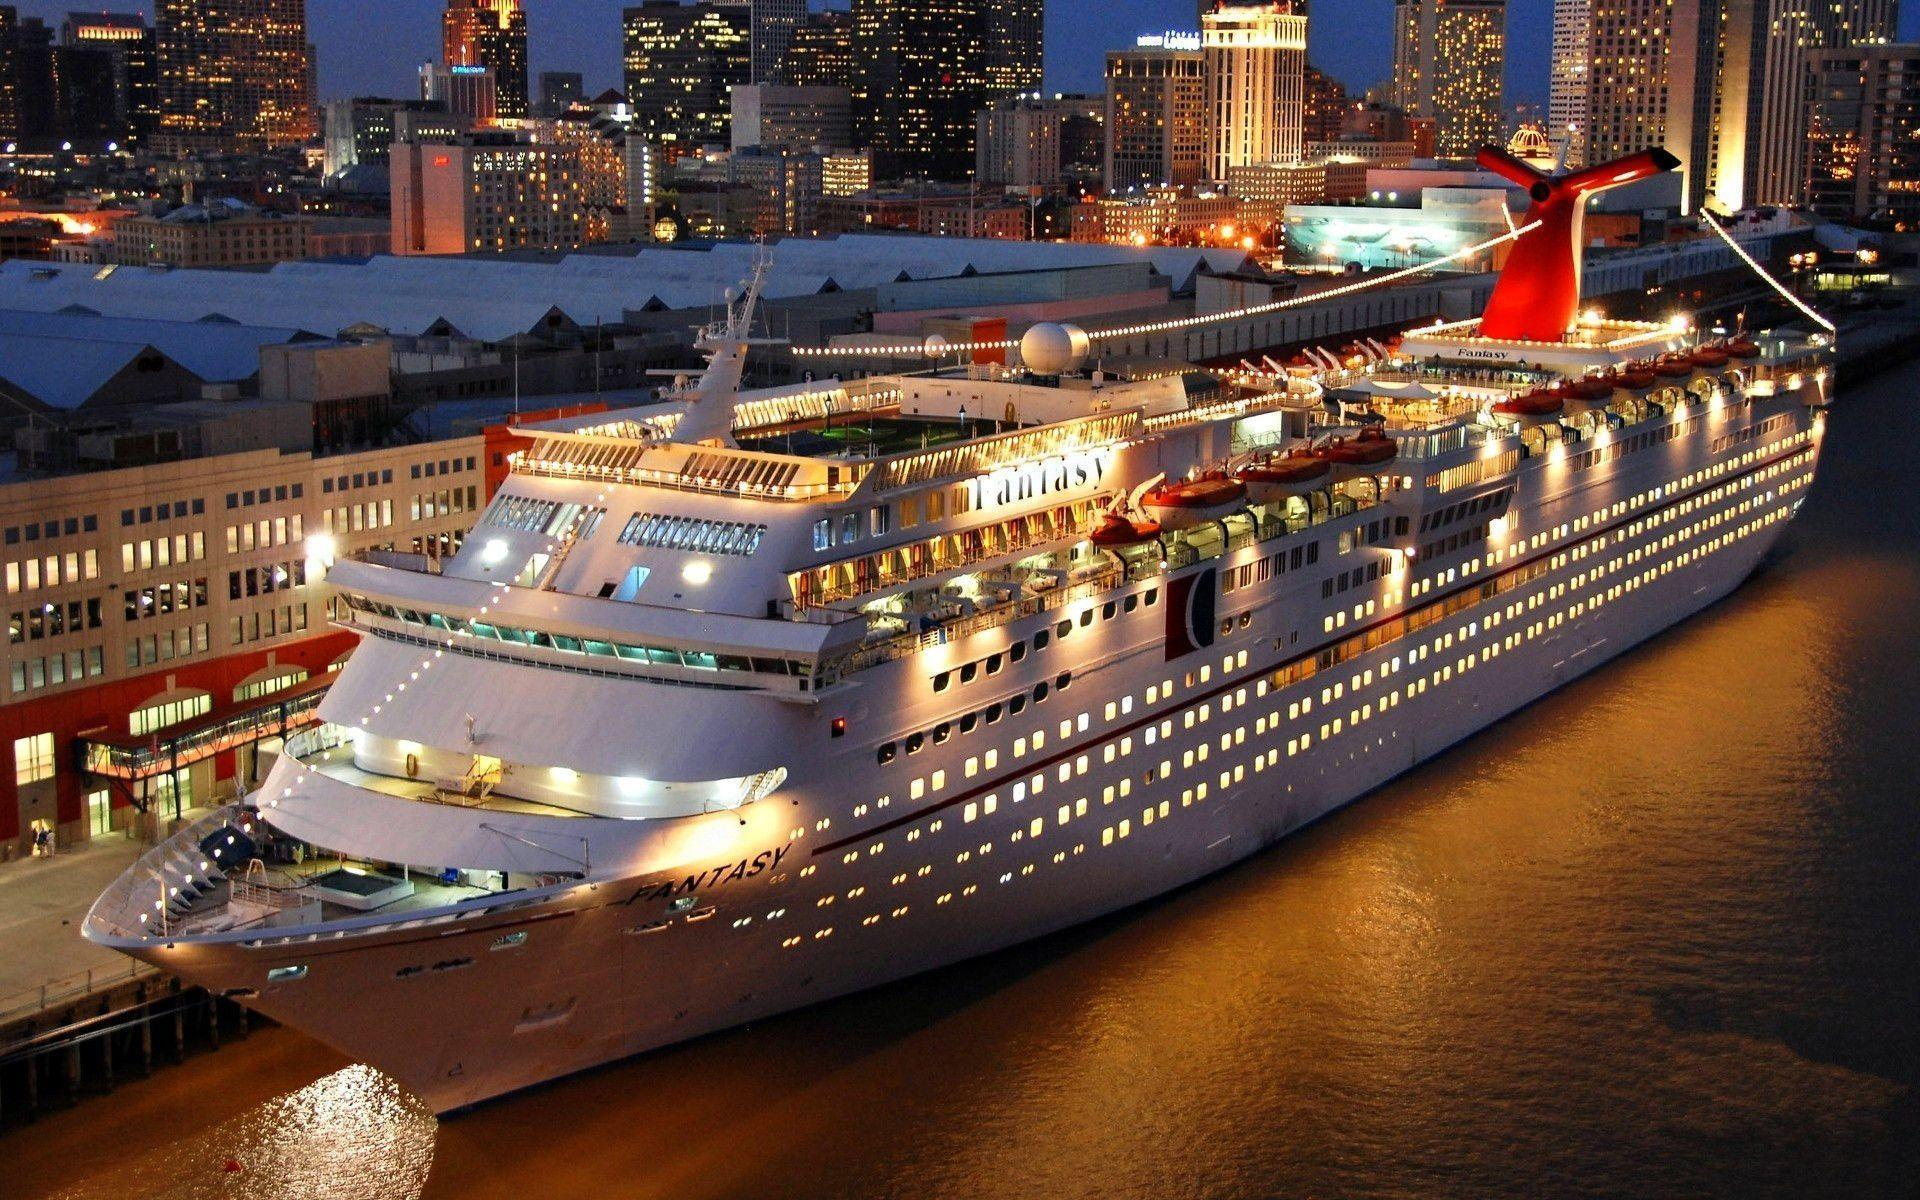 123 Cruise Ship Wallpapers | Cruise Ship Backgrounds Page 2